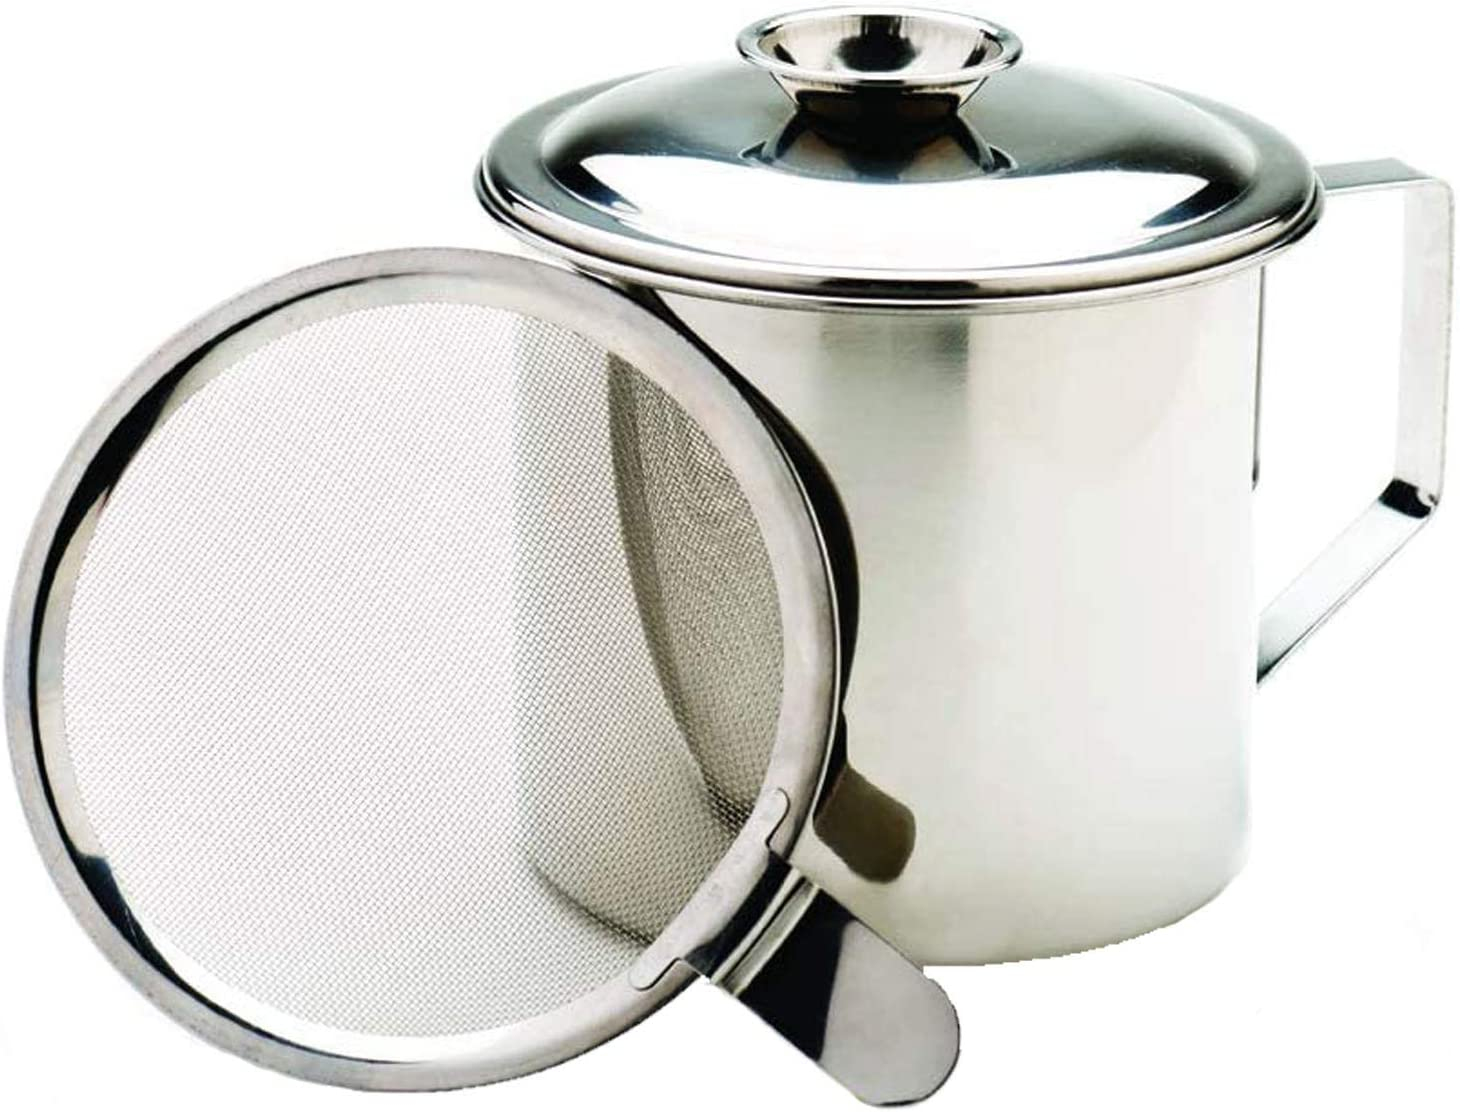 MEKBOK Cooking Oil and Bacon Grease Catcher, Container, and Keeper. Perfect As A Pan Grease Holder, 1.25 (5 Cups) Qt Stainless Steel Mesh Strainer Screen